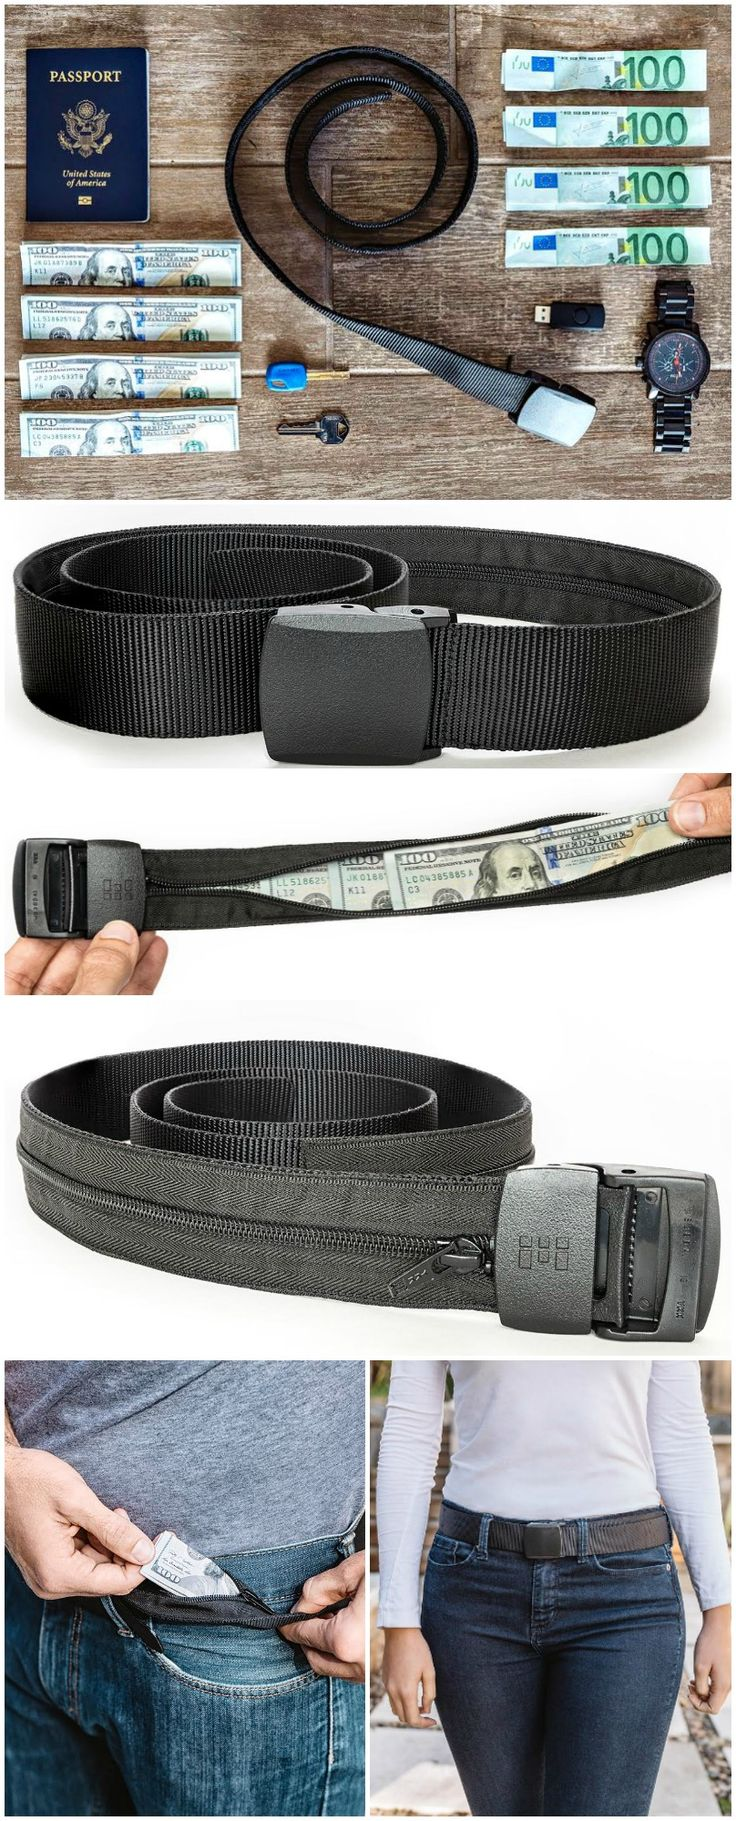 The frustration-free Travel Security Belt is the traveler's 'insurance policy' against a stolen or lost wallet. Fits cash and paper copies of your IDs.